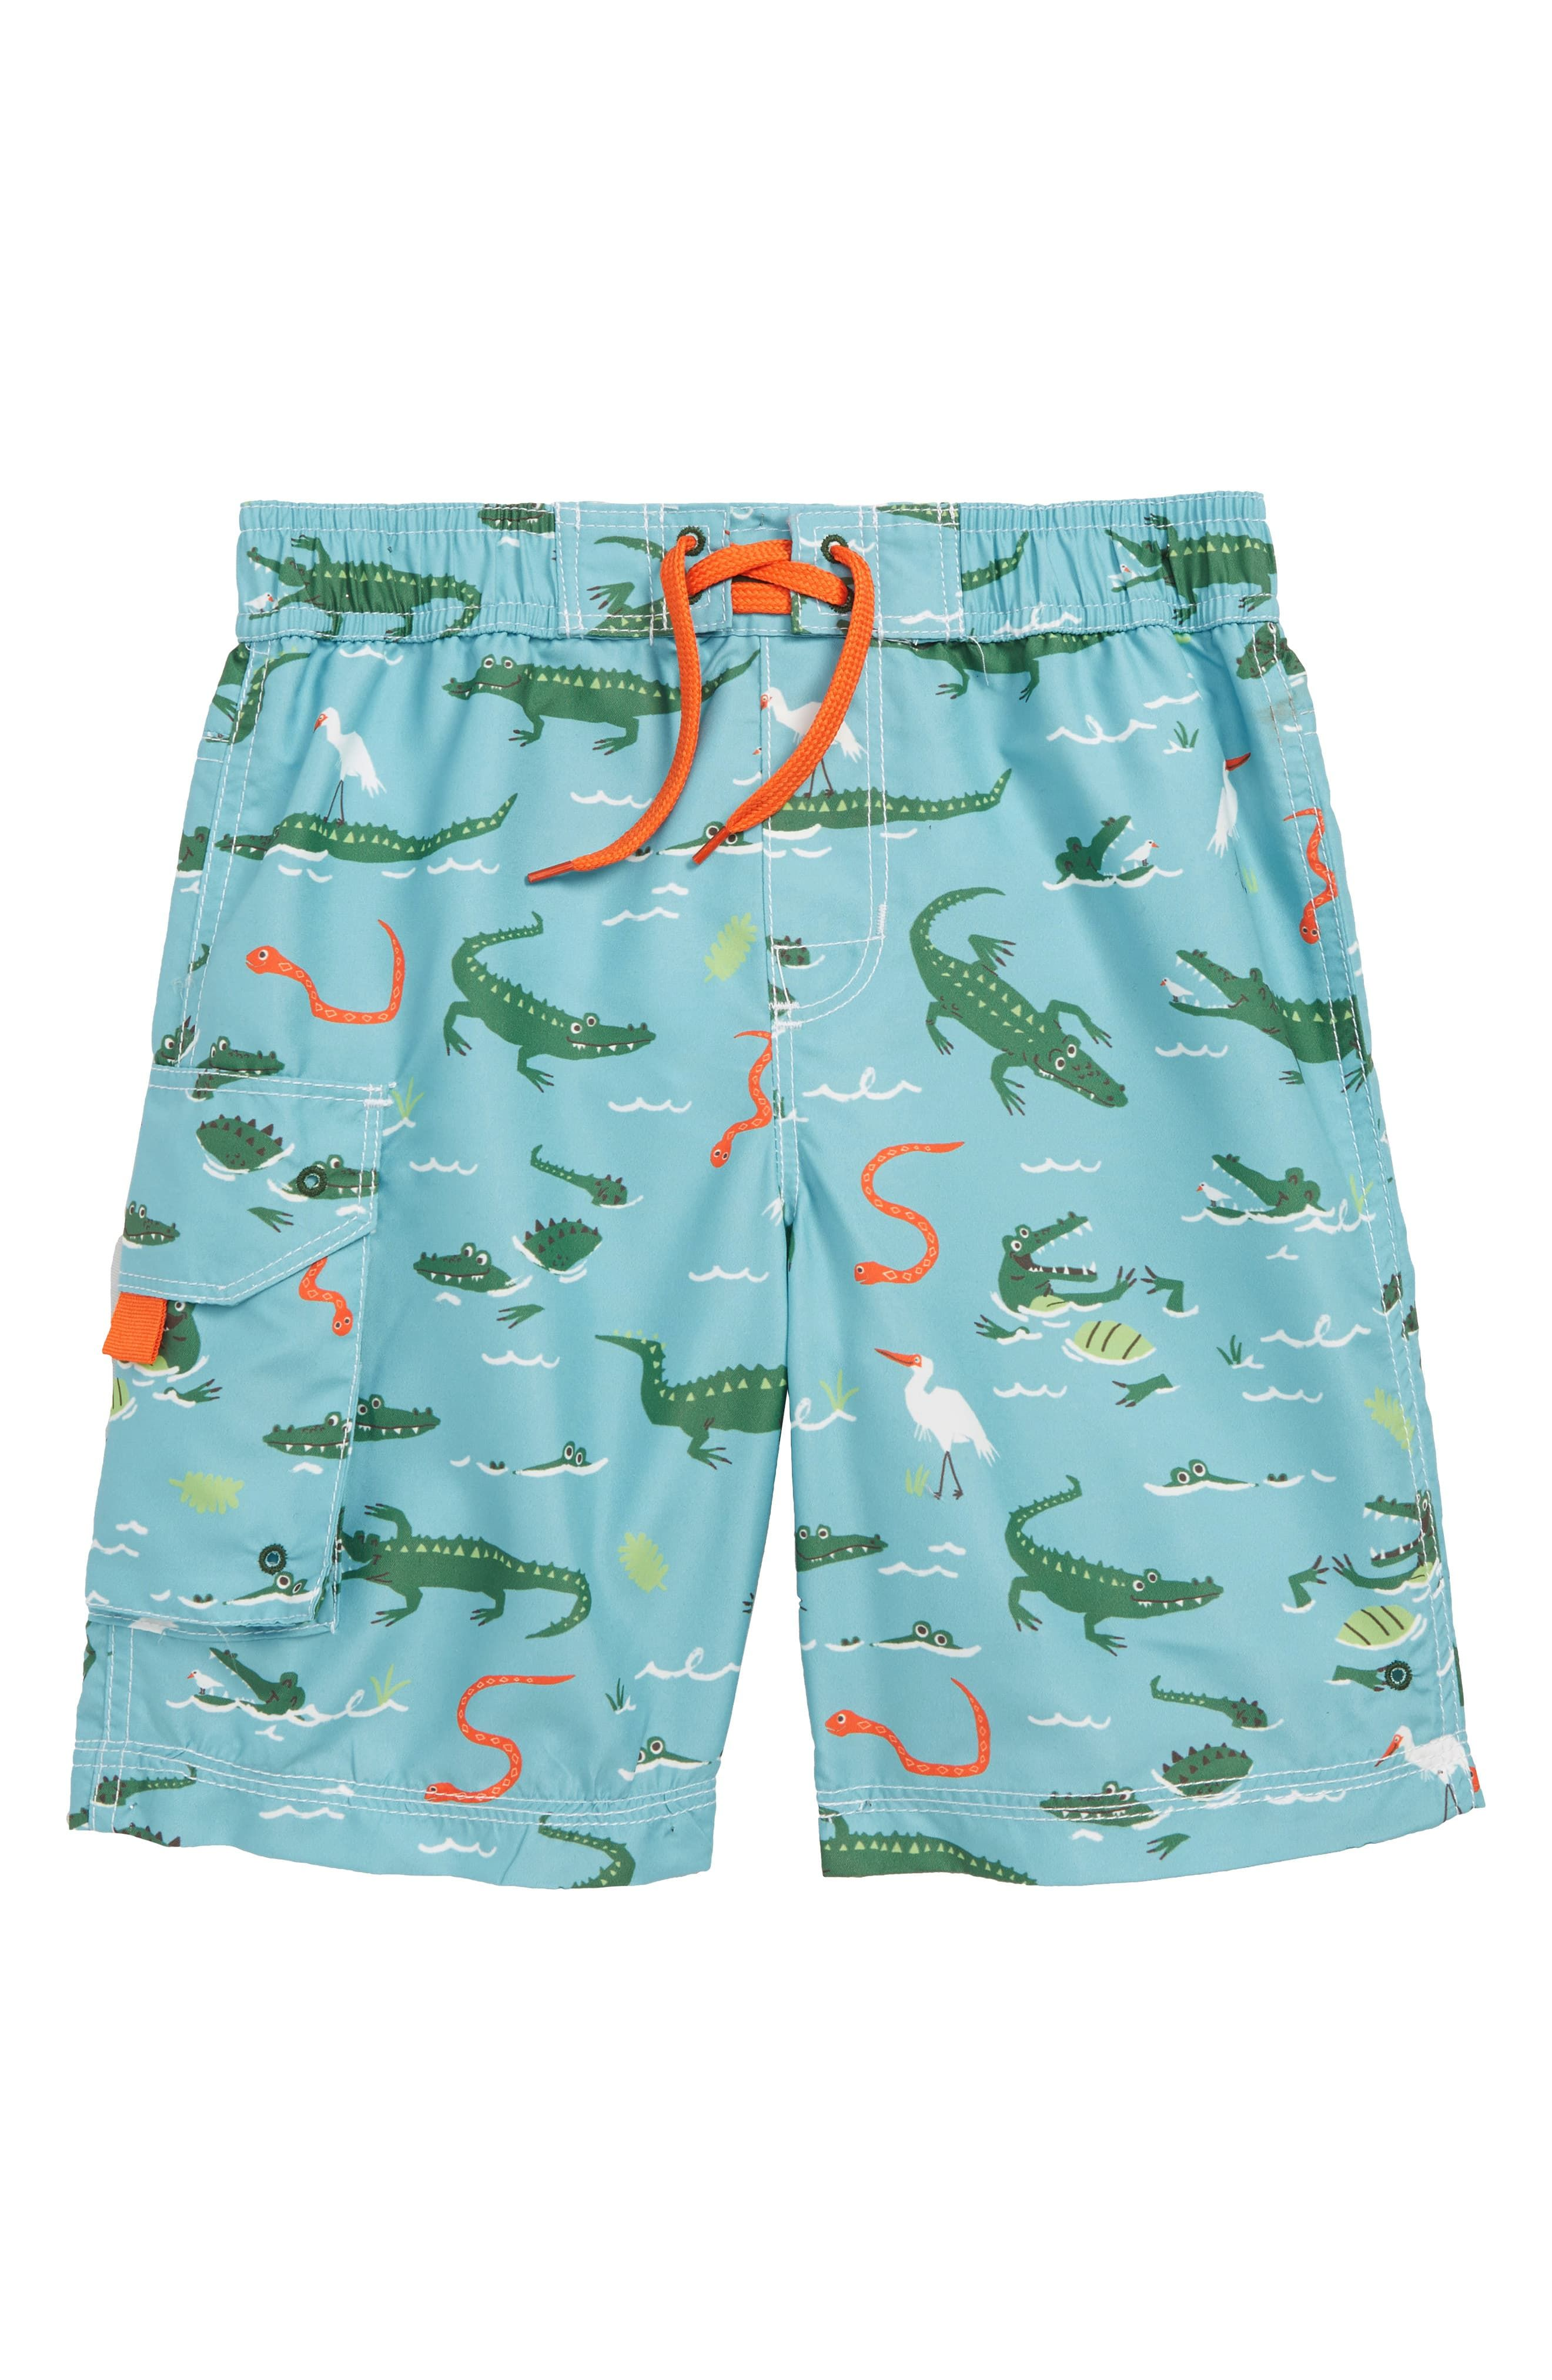 60ded5be33 Toddler Boy's Hatley Swamp Gators Board Shorts, Size 2 - Blue ...